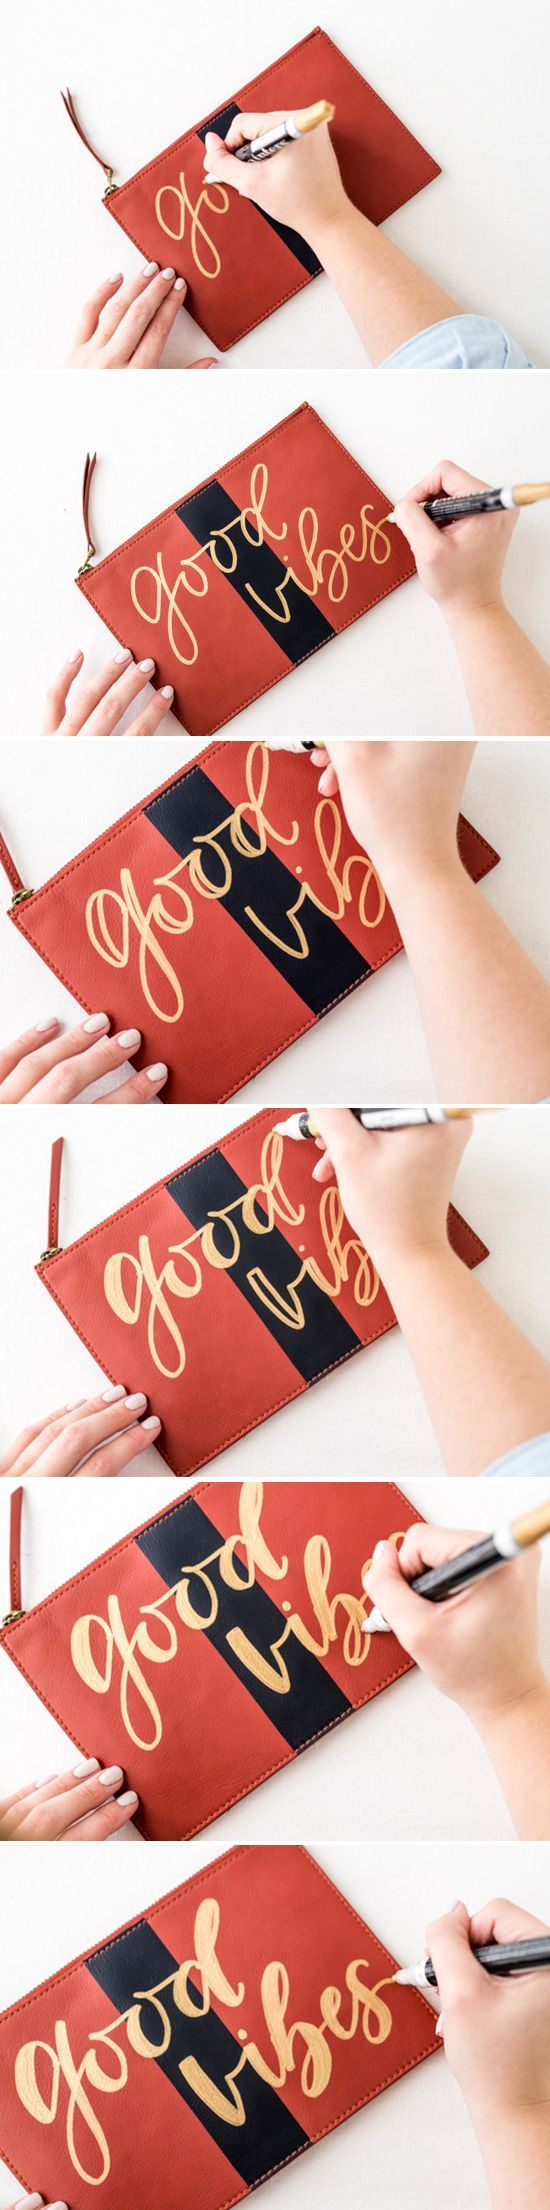 How to hand letter a clutch (the easy way) with a paint marker specially made for writing on leather and fabrics. @elmersproducts #StyleByAisle #PaintersStyle